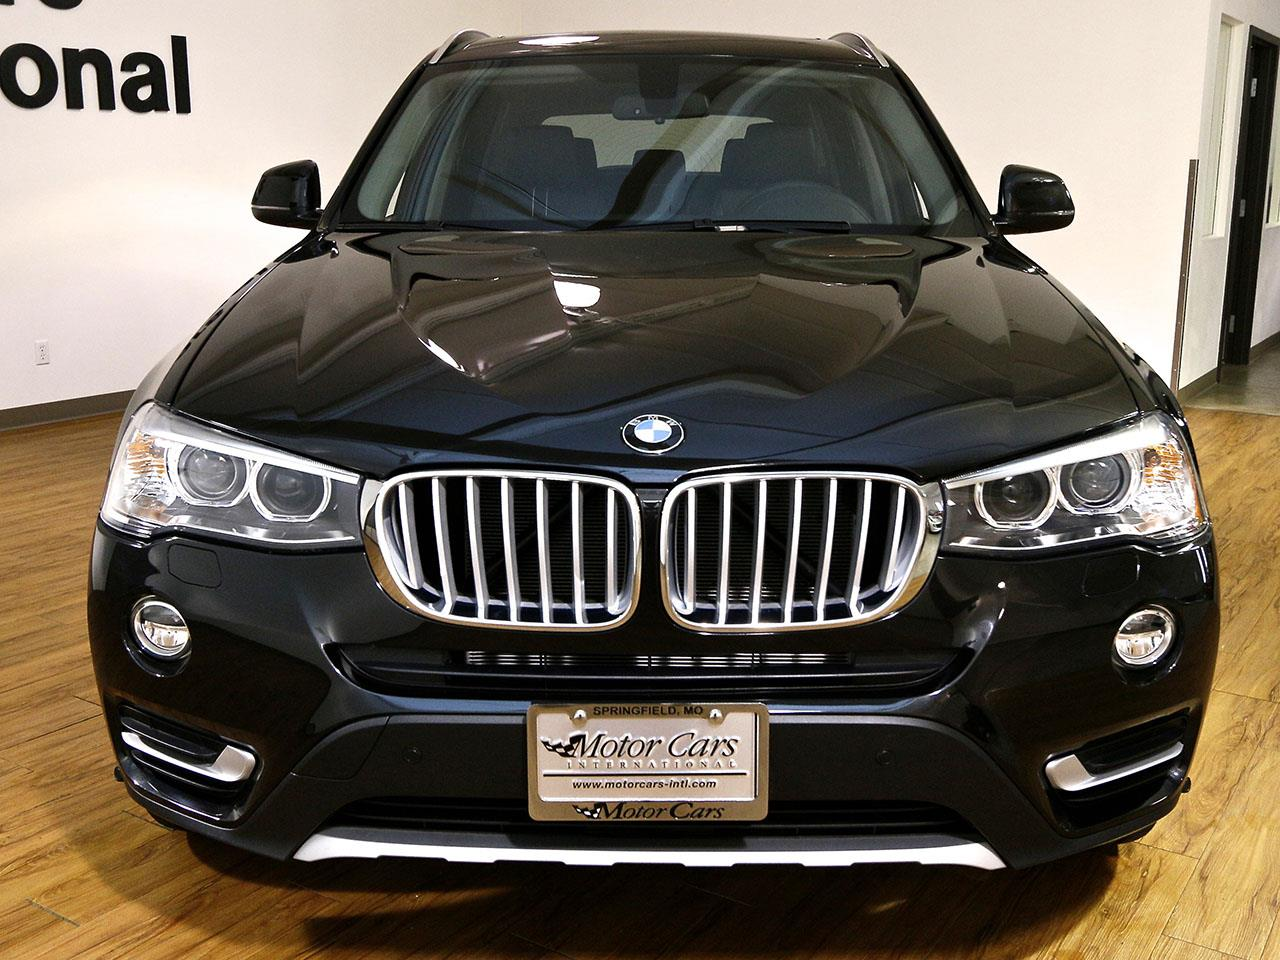 2016 bmw x3 xdrive 28d diesel. Black Bedroom Furniture Sets. Home Design Ideas